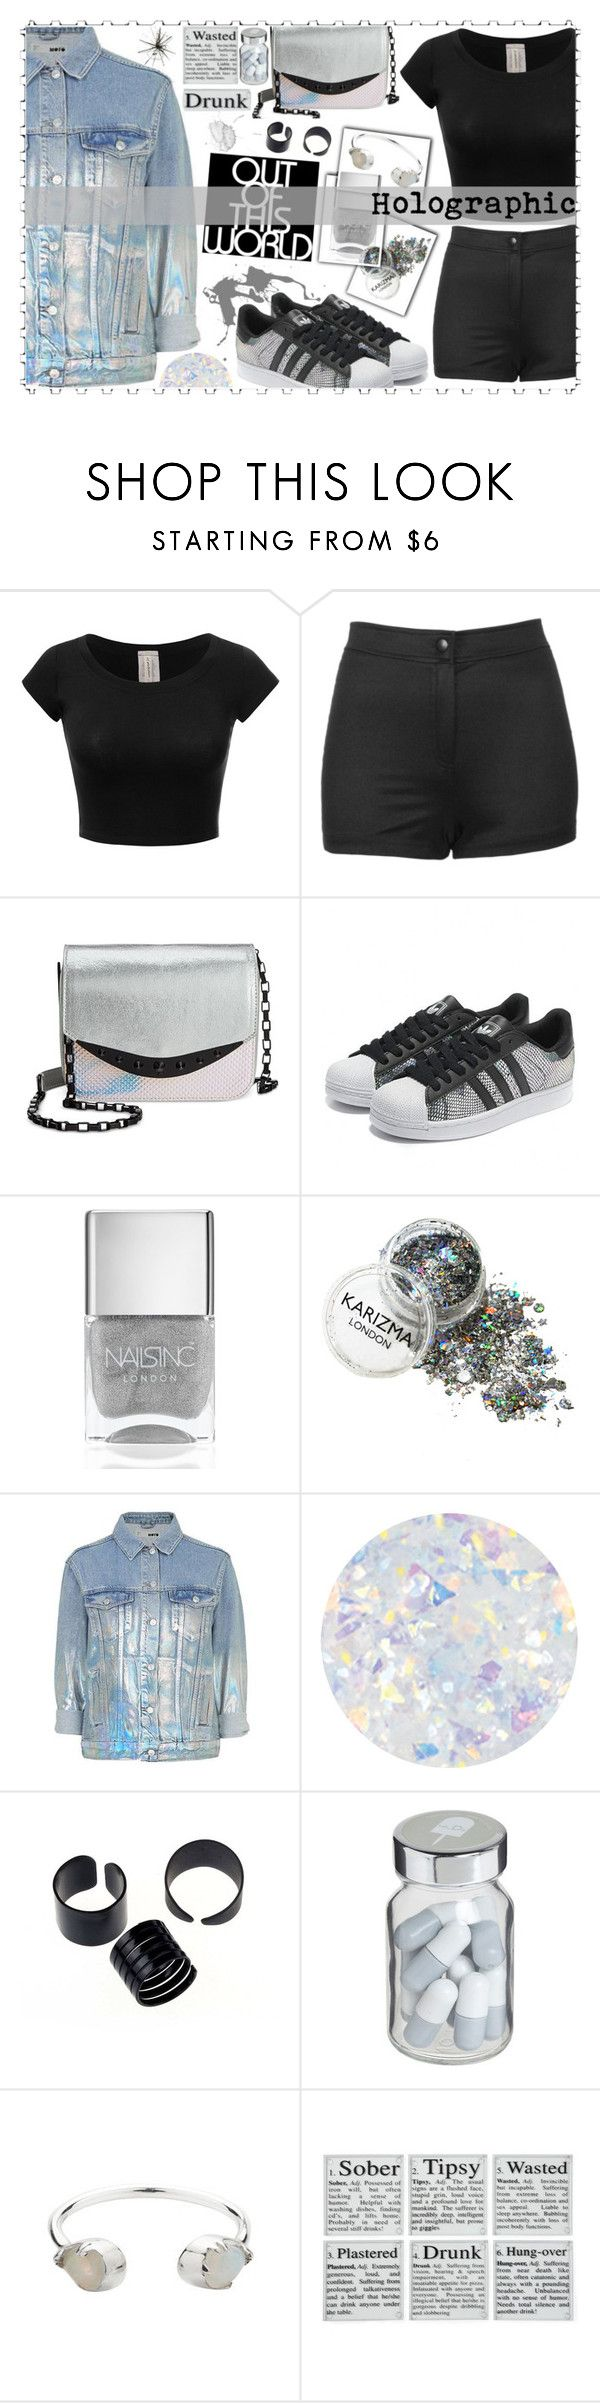 """Holographic"" by kawtar-el ❤ liked on Polyvore featuring Topshop, Circus by Sam Edelman, Nails Inc., Essie, Vita, Zimmermann and holographic"